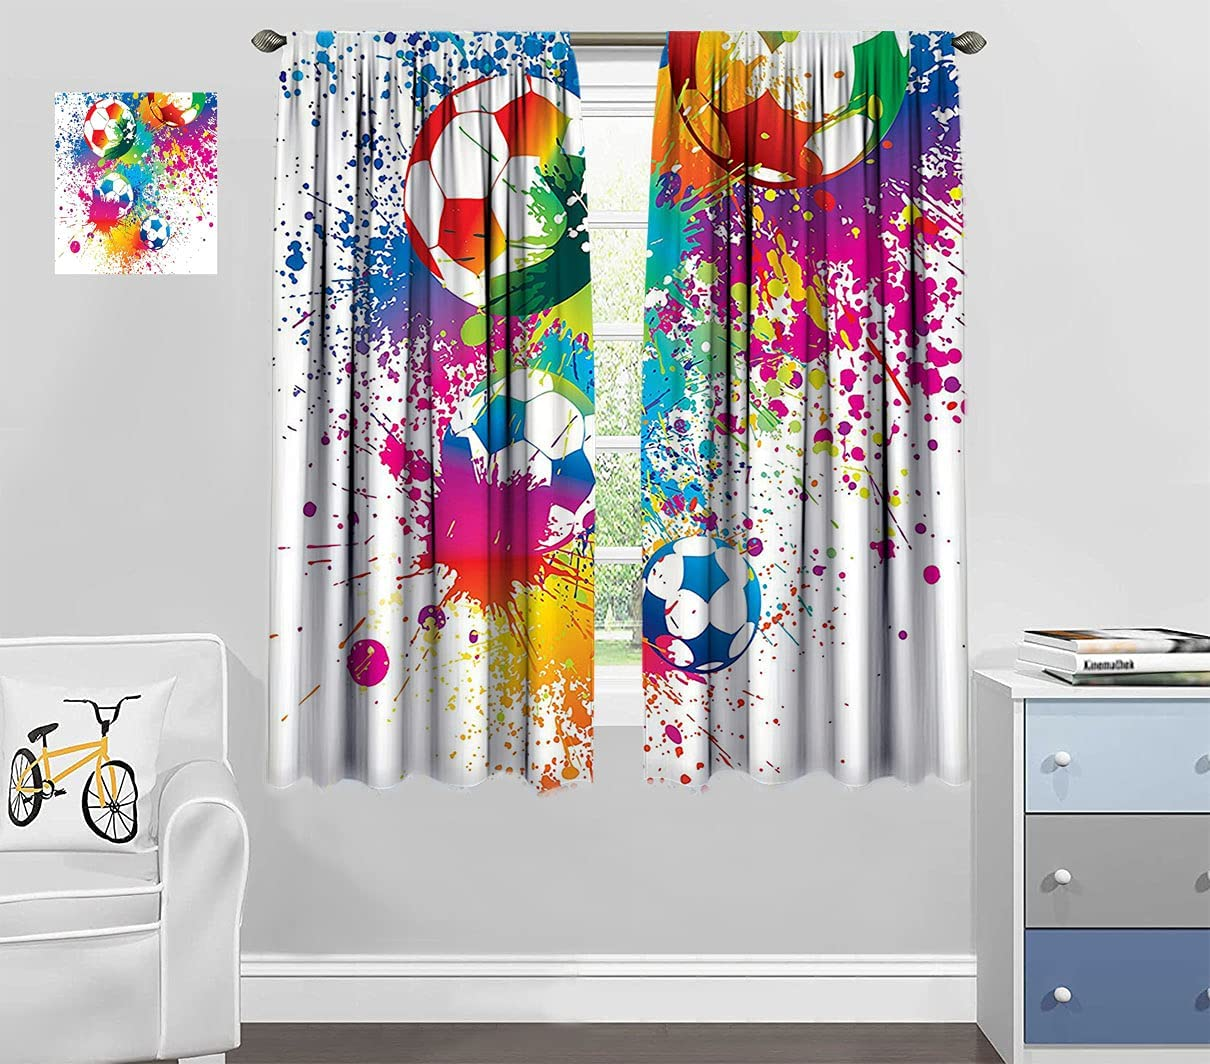 New High material arrival Sports Decor Curtains for Living All Room Colored Over Splashes